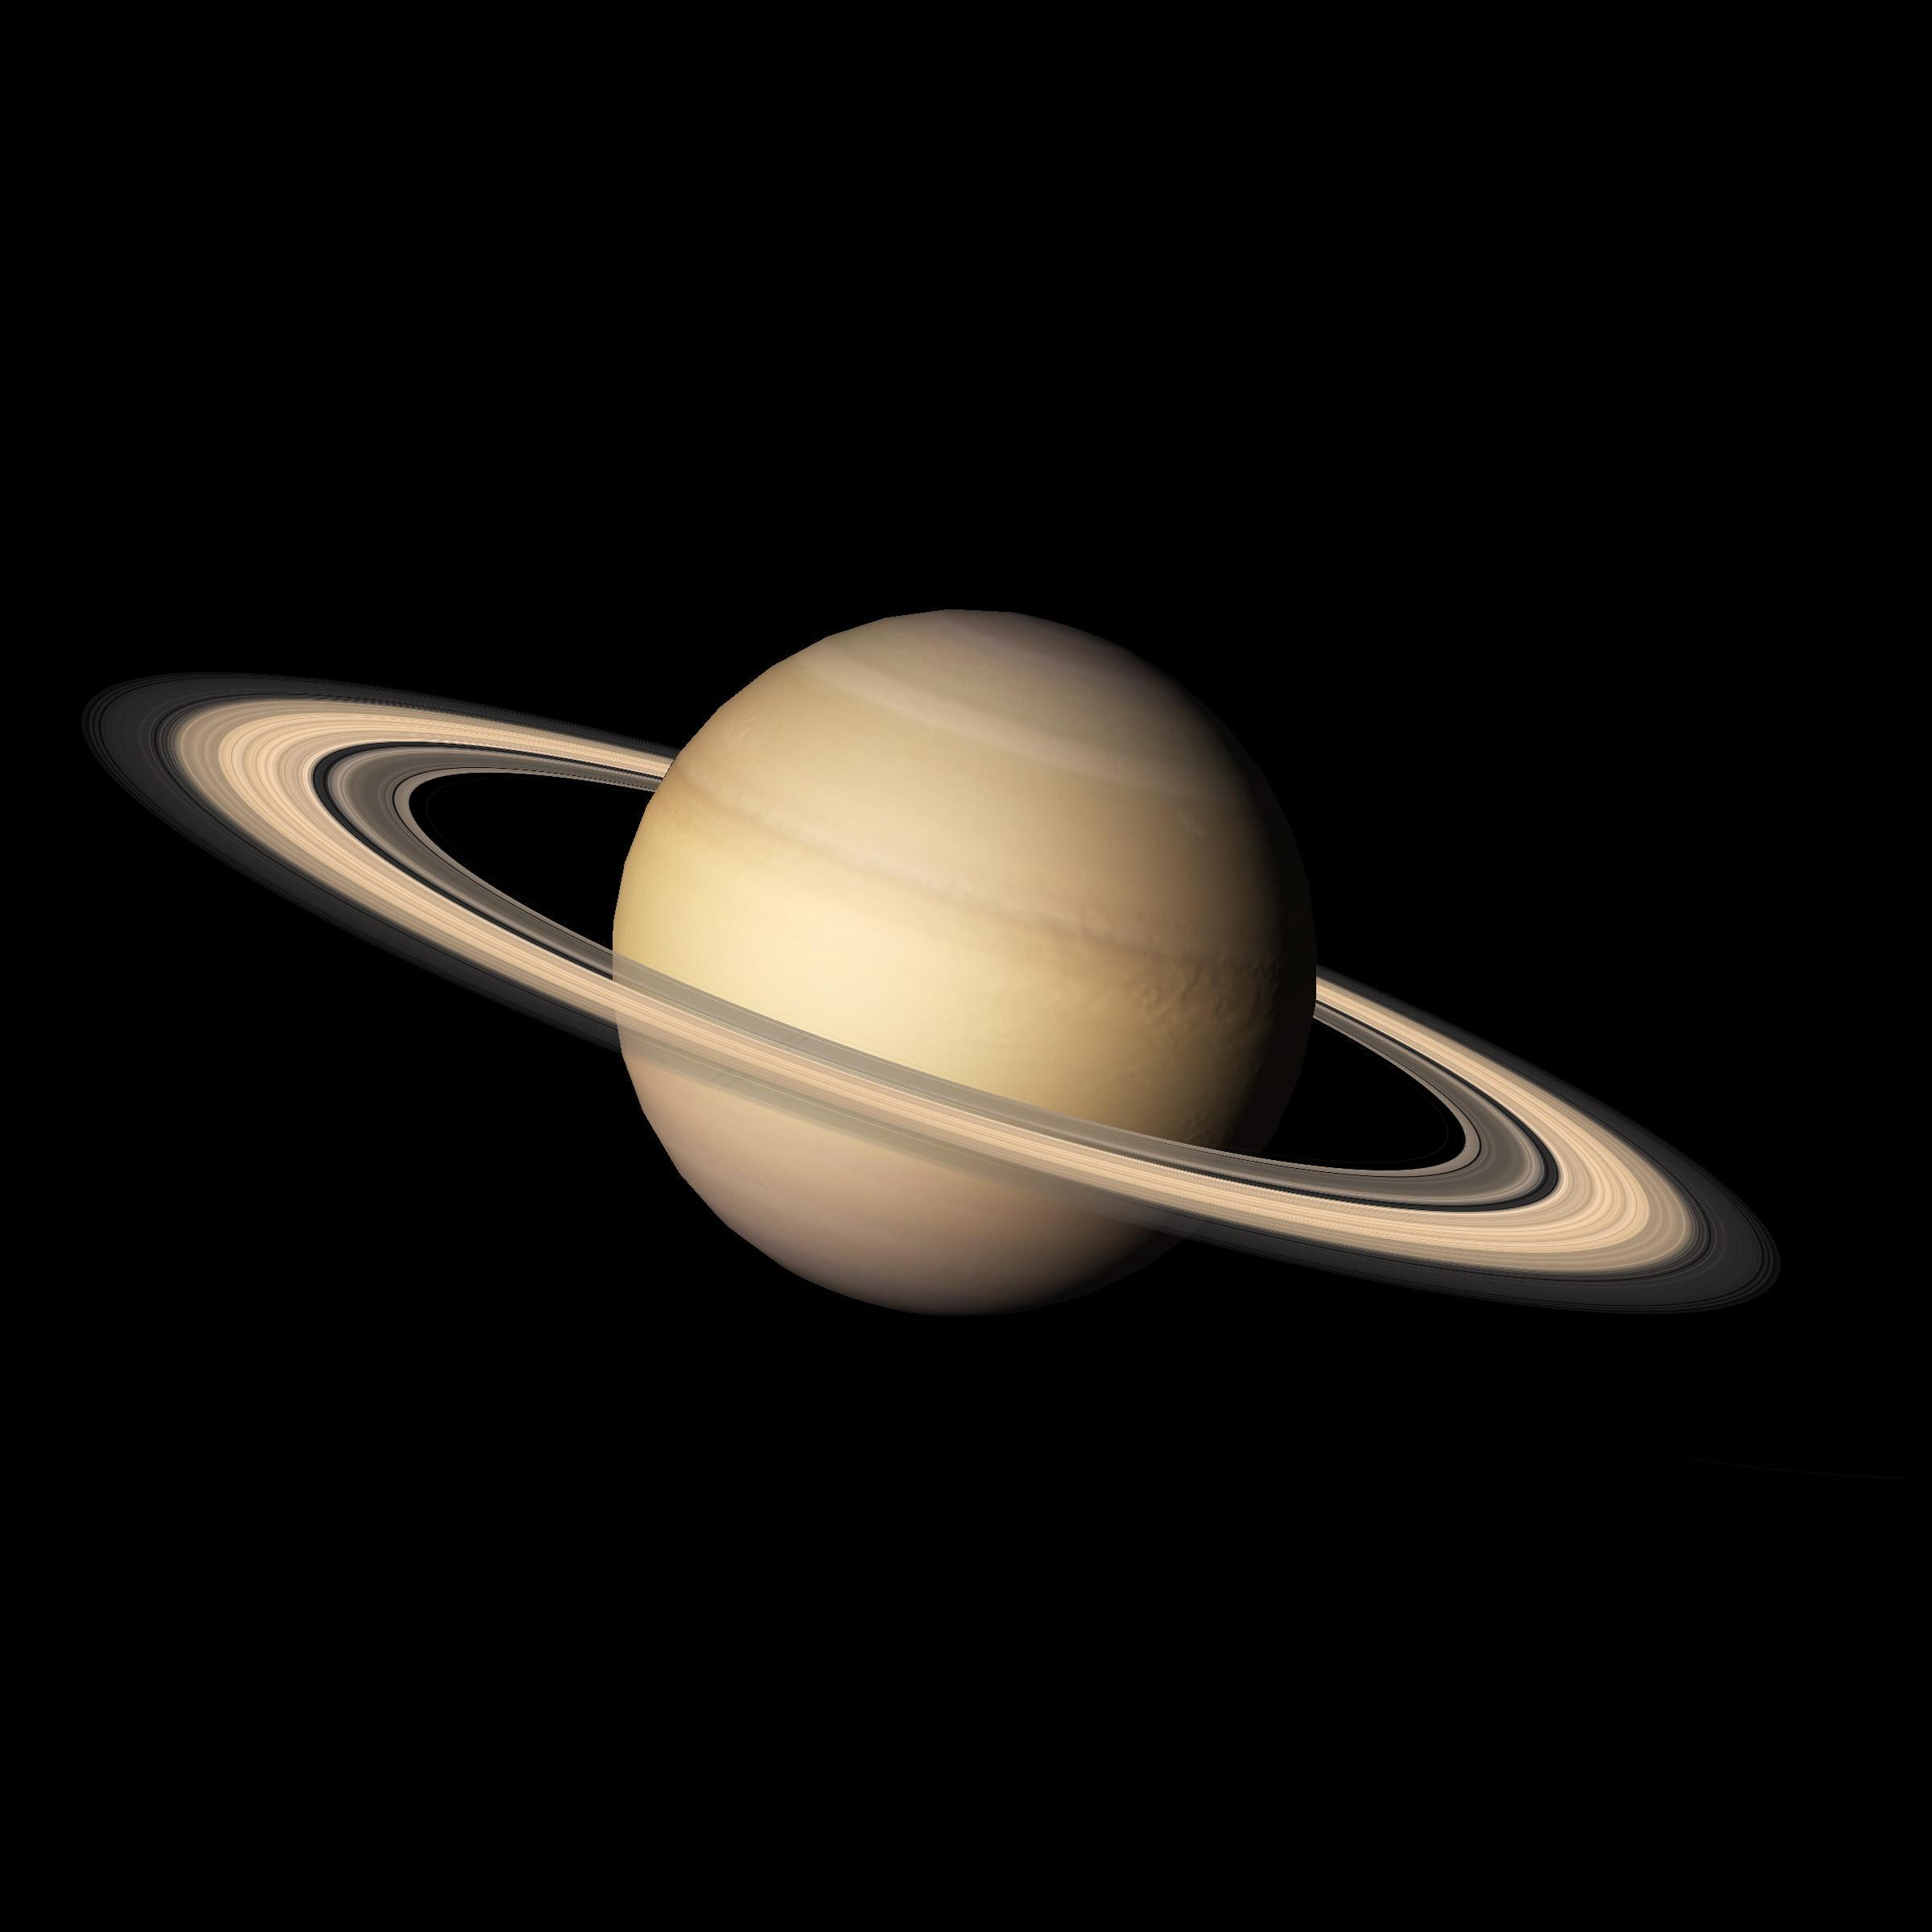 planet saturn pictures - HD 2400×2400